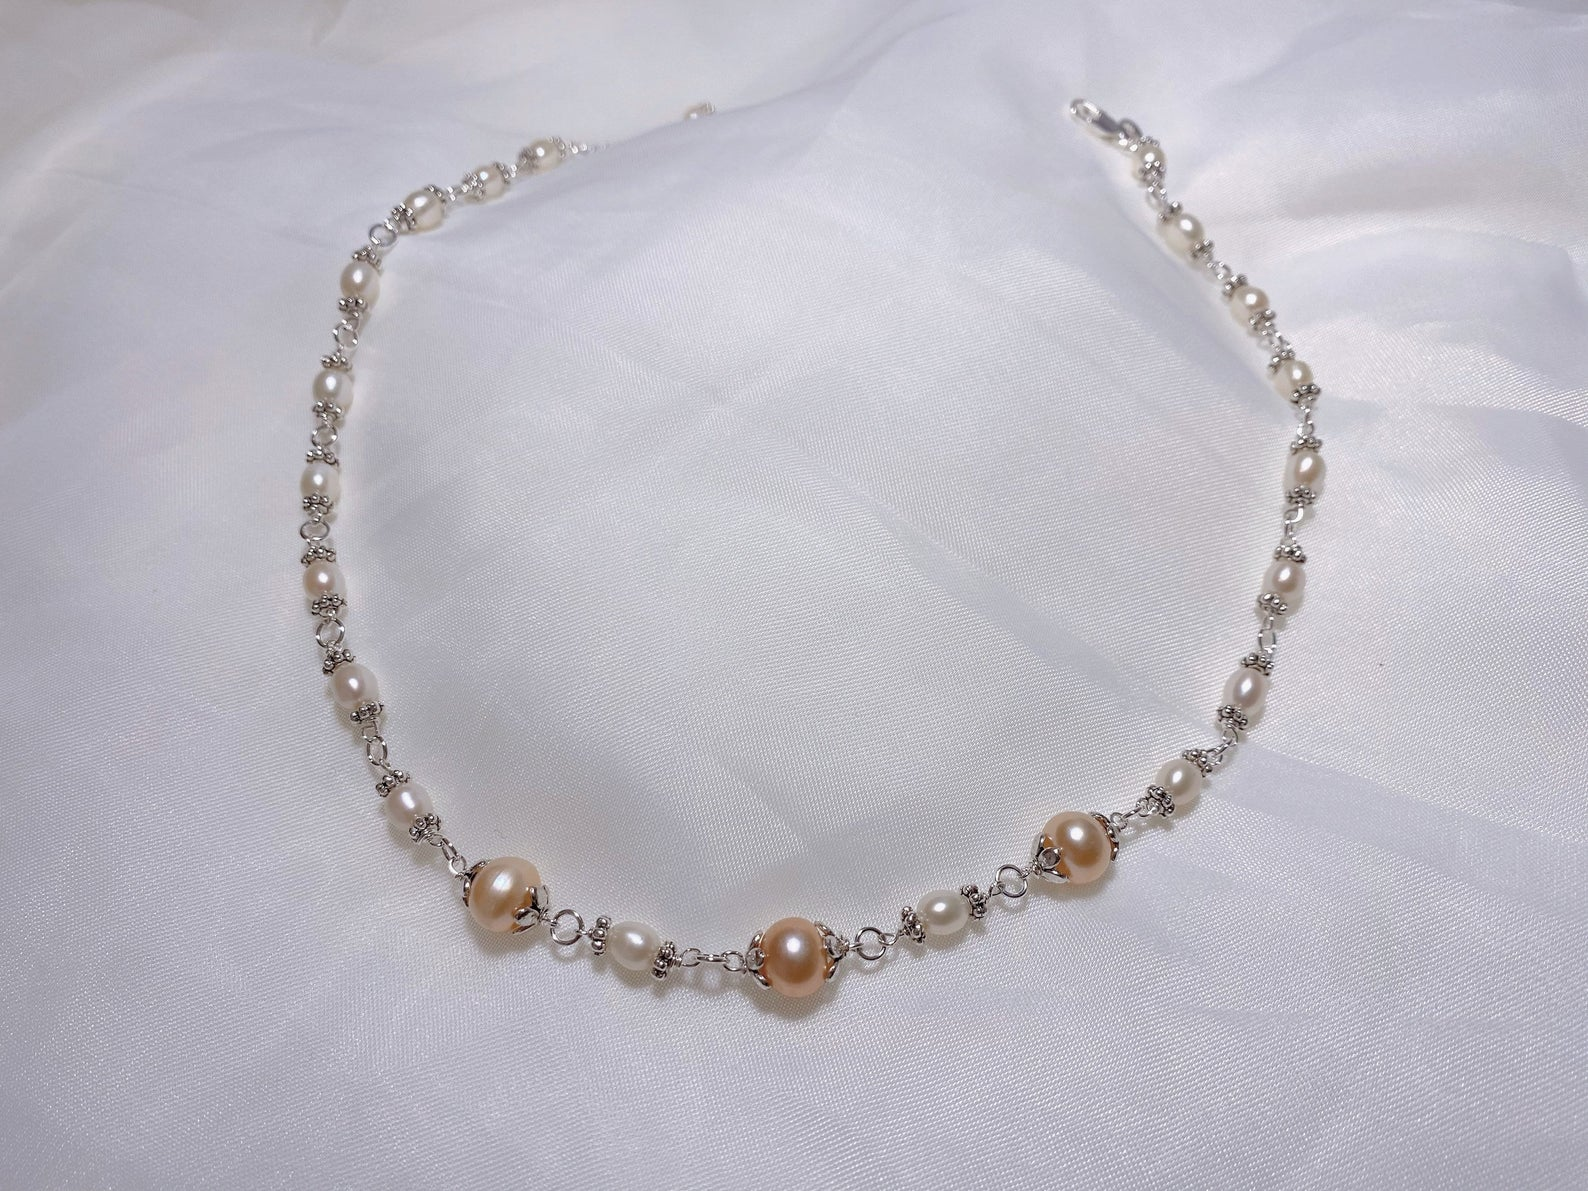 There are three large pearls amongst a sea of smaller white ones, all separated by elegant clasps.